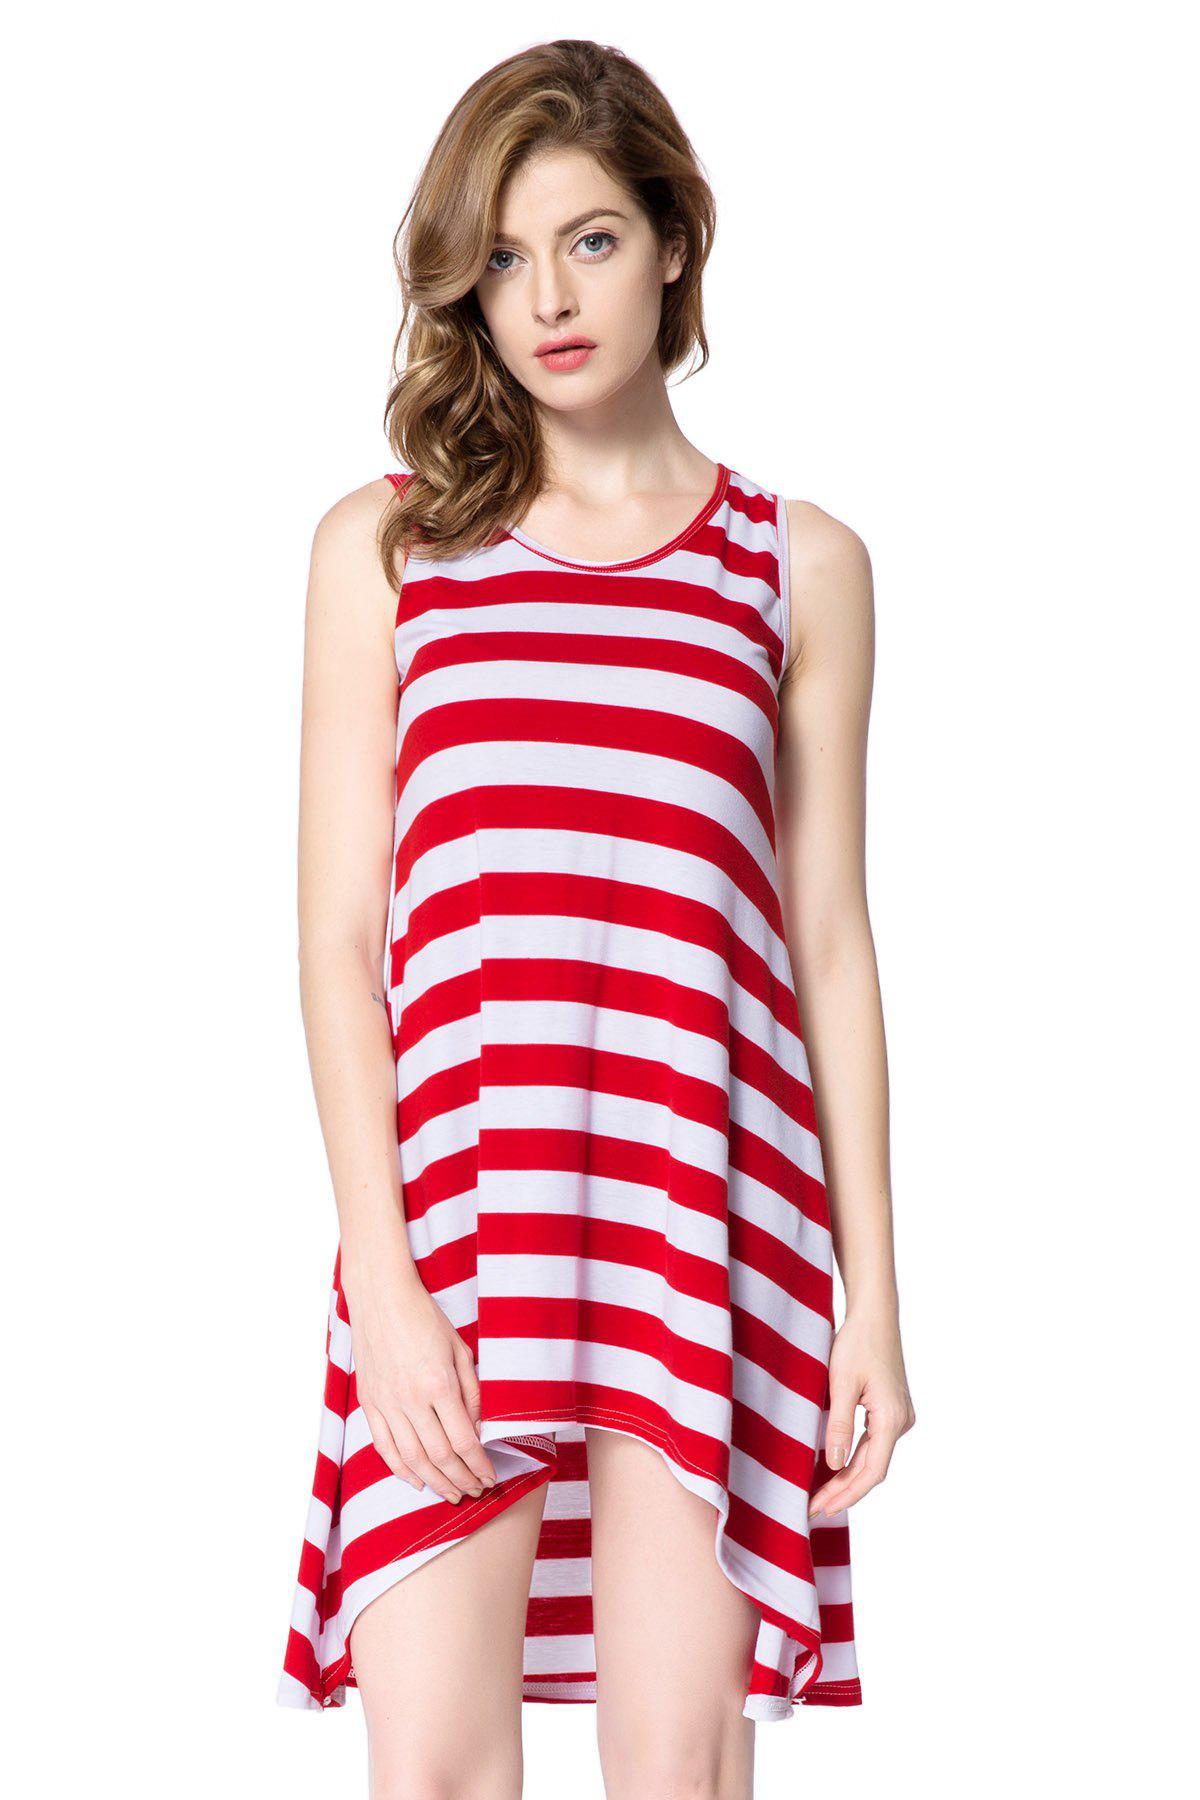 Casual Scoop Neck Sleeveless Loose-Fitting Striped Women's Dress - RED ONE SIZE